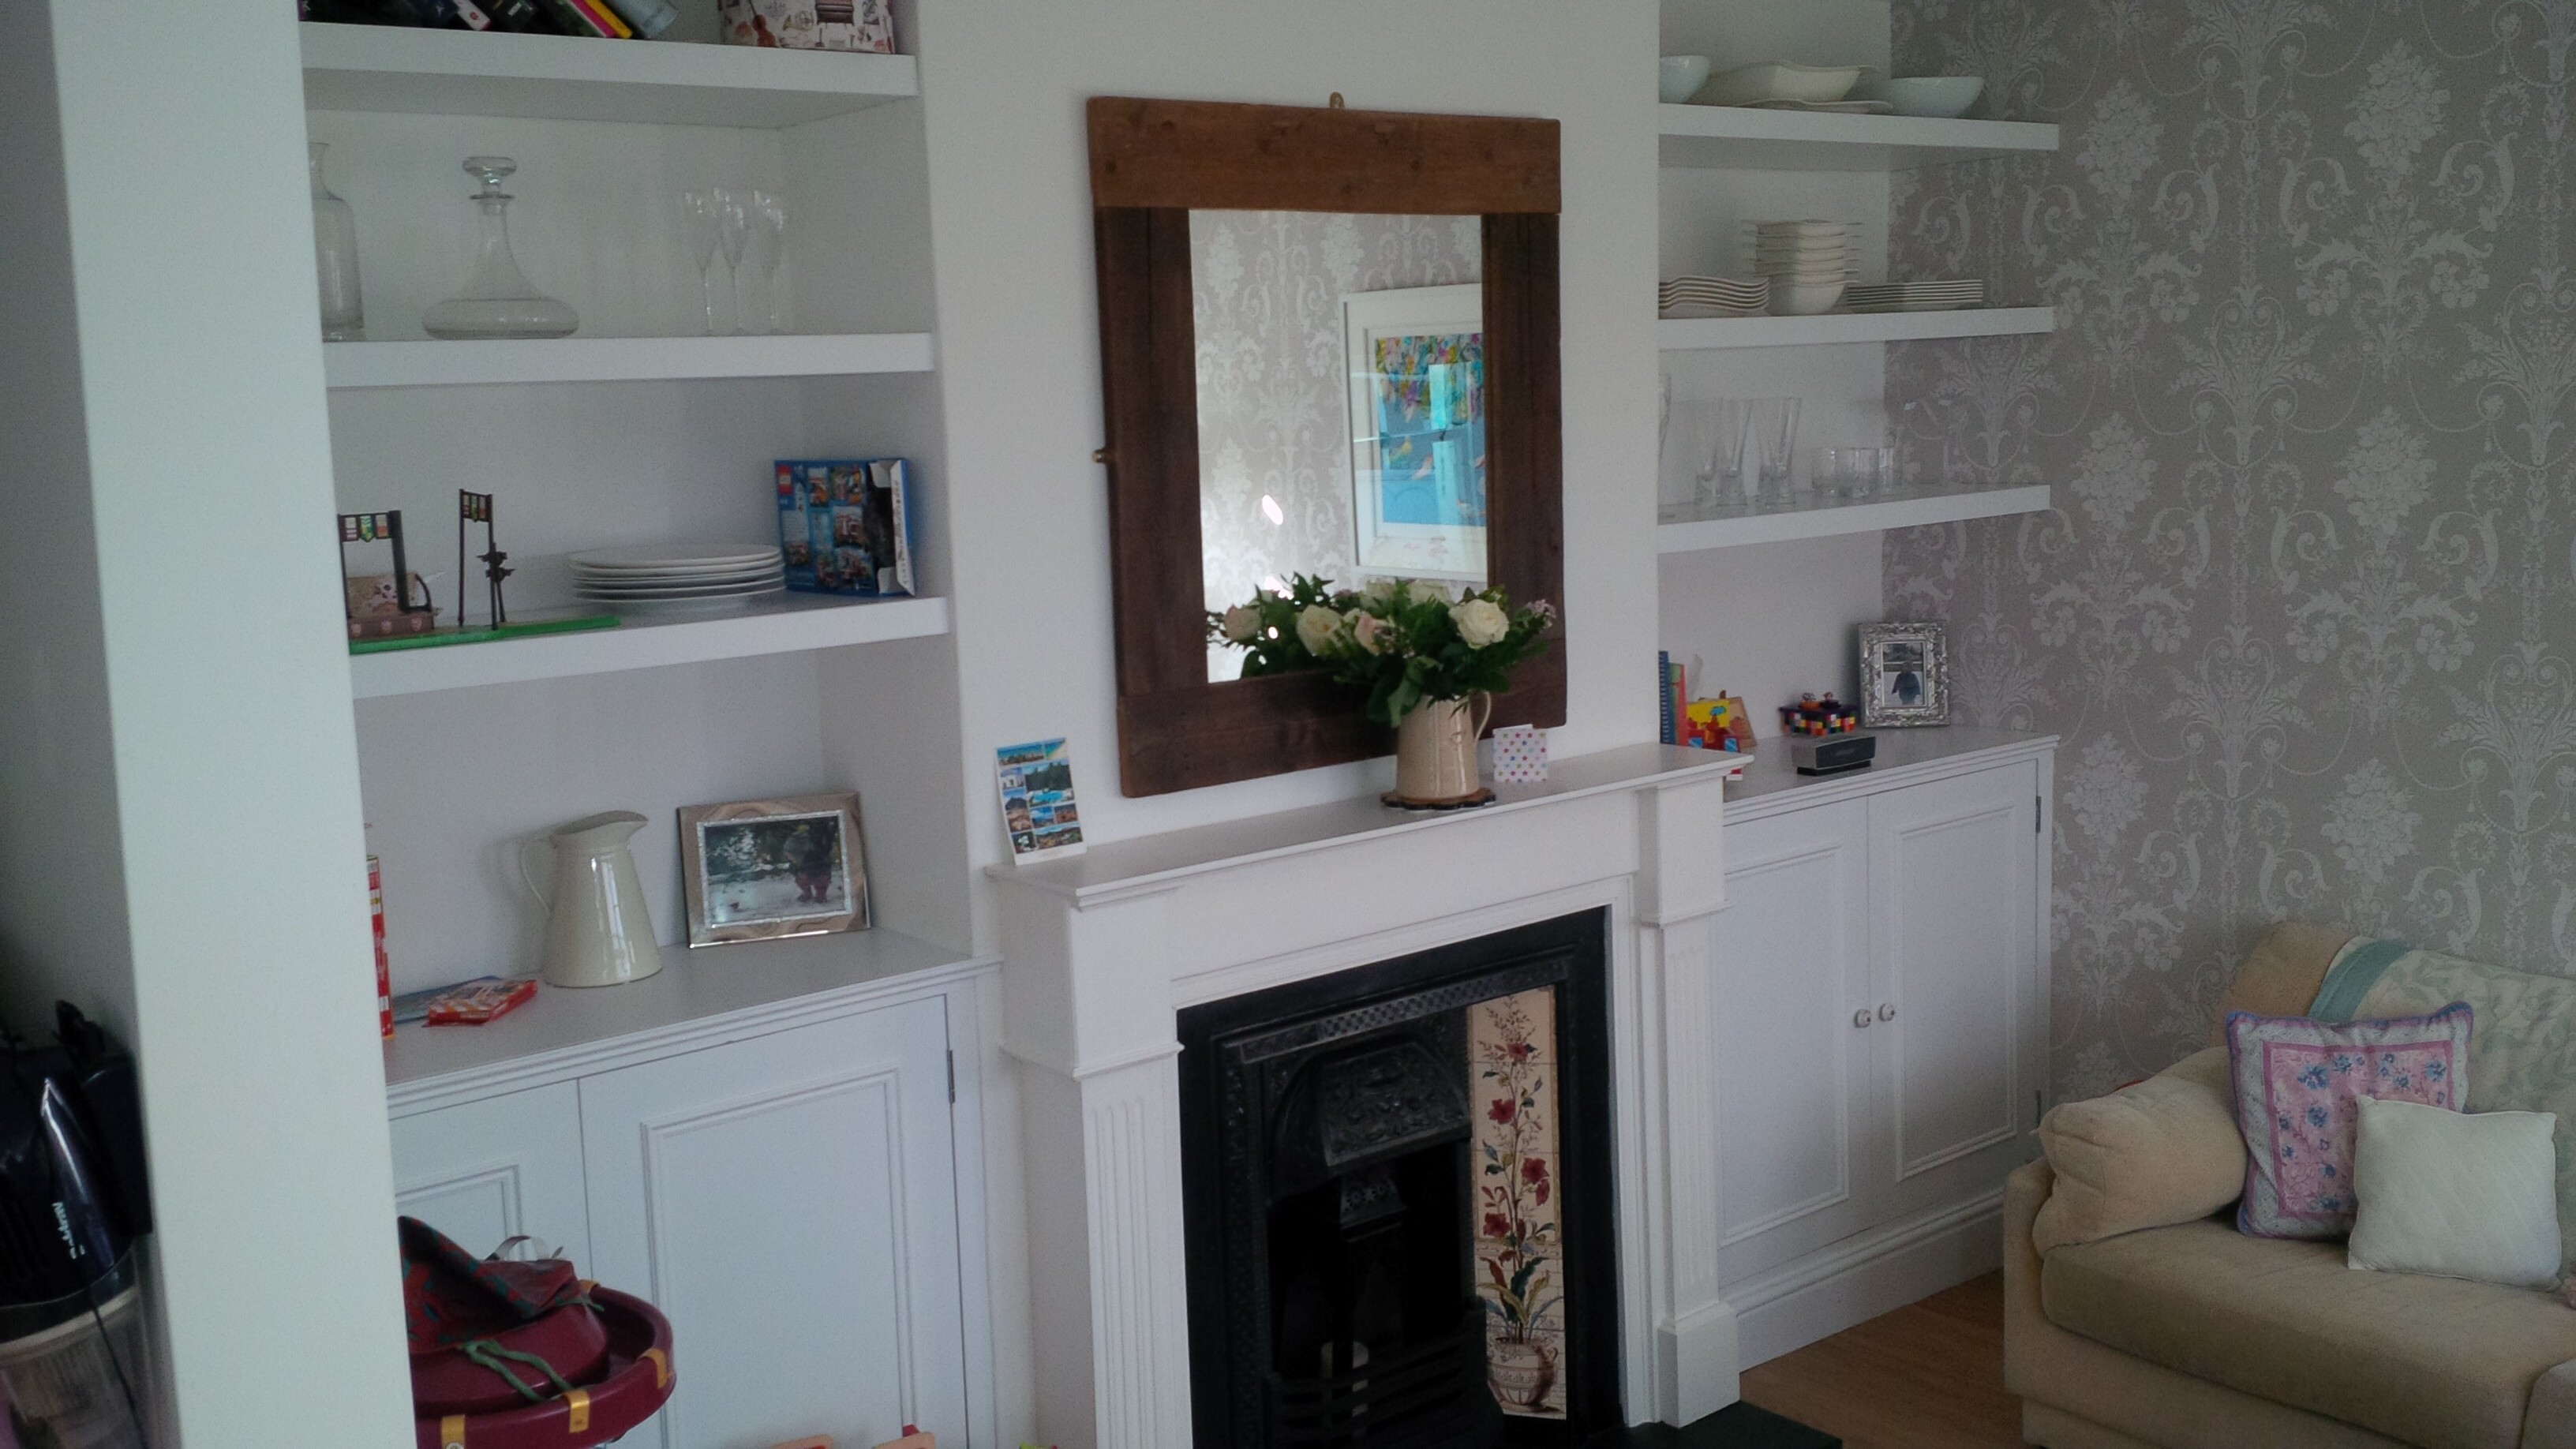 Bespoke Alcove Cupboards With Floating Shelving Surrey Joinery With Regard To Bespoke Cupboards (#1 of 12)